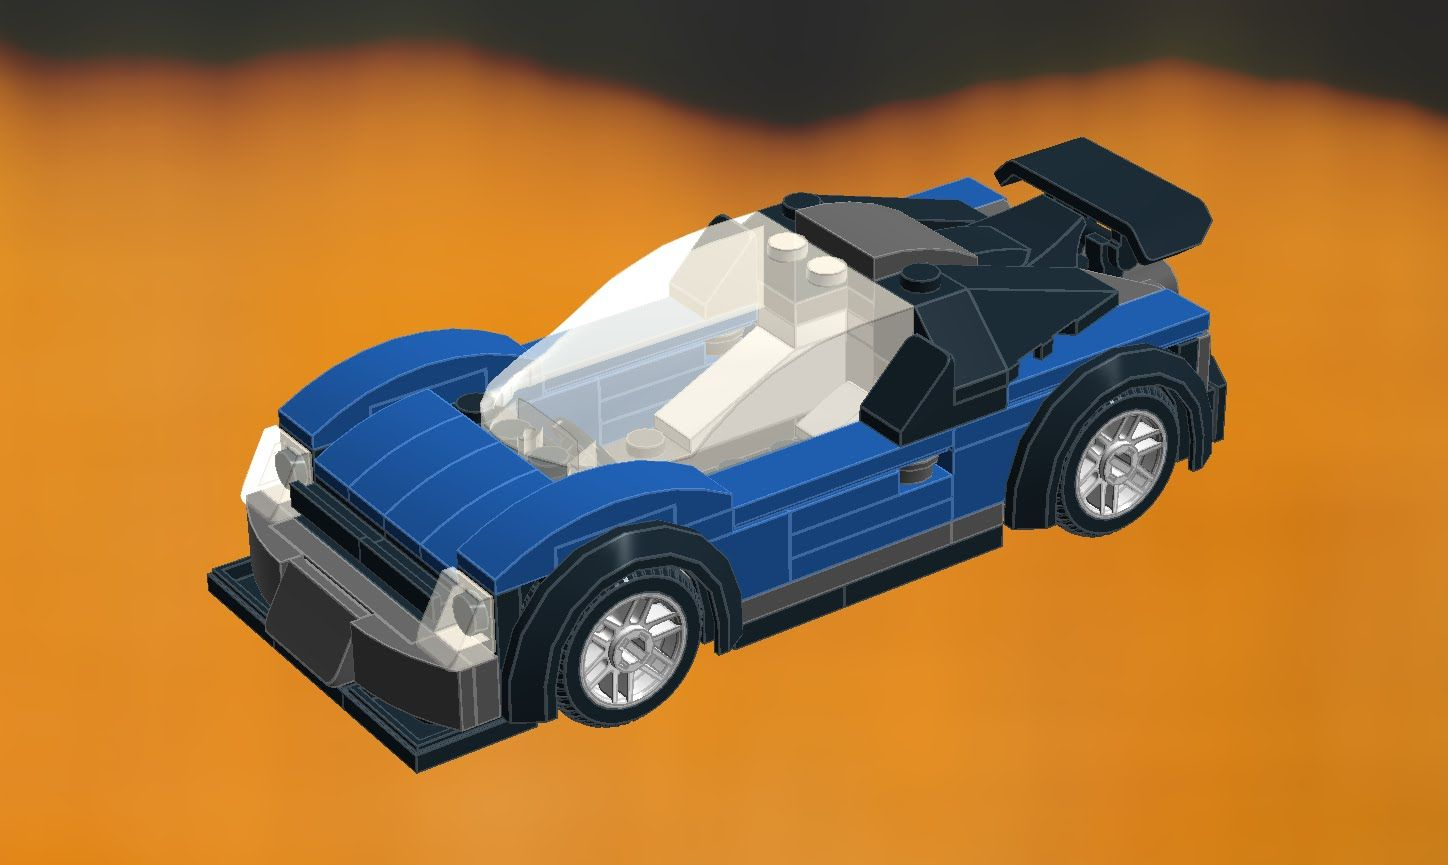 LEGO Speed Champions blue GT supercar moc 2017 model  How to